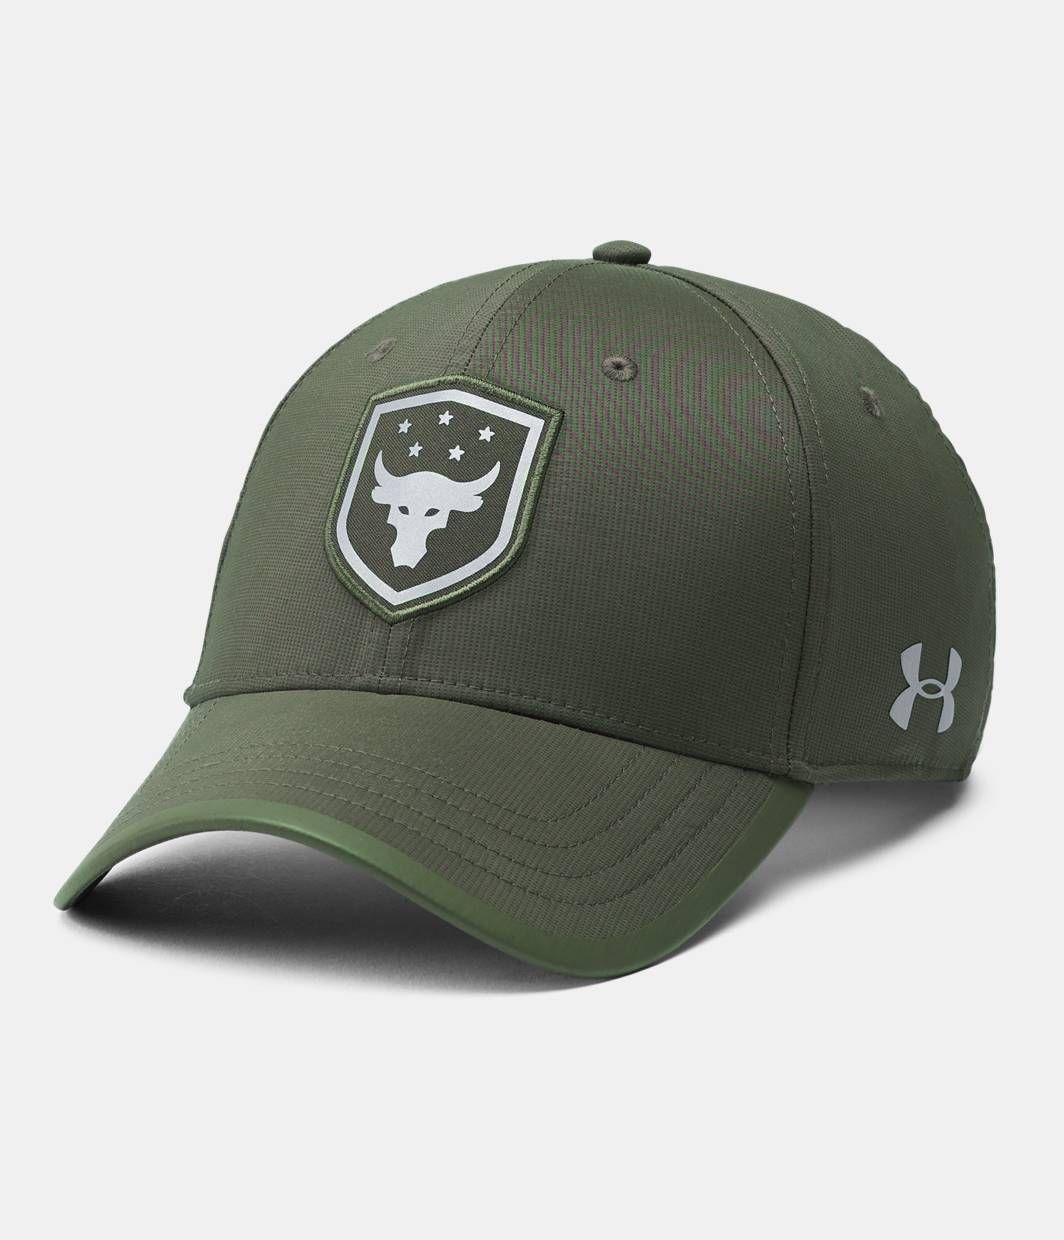 ae952bb6 Men's UA x Project Rock Threadborne Training Cap | Under Armour US ...